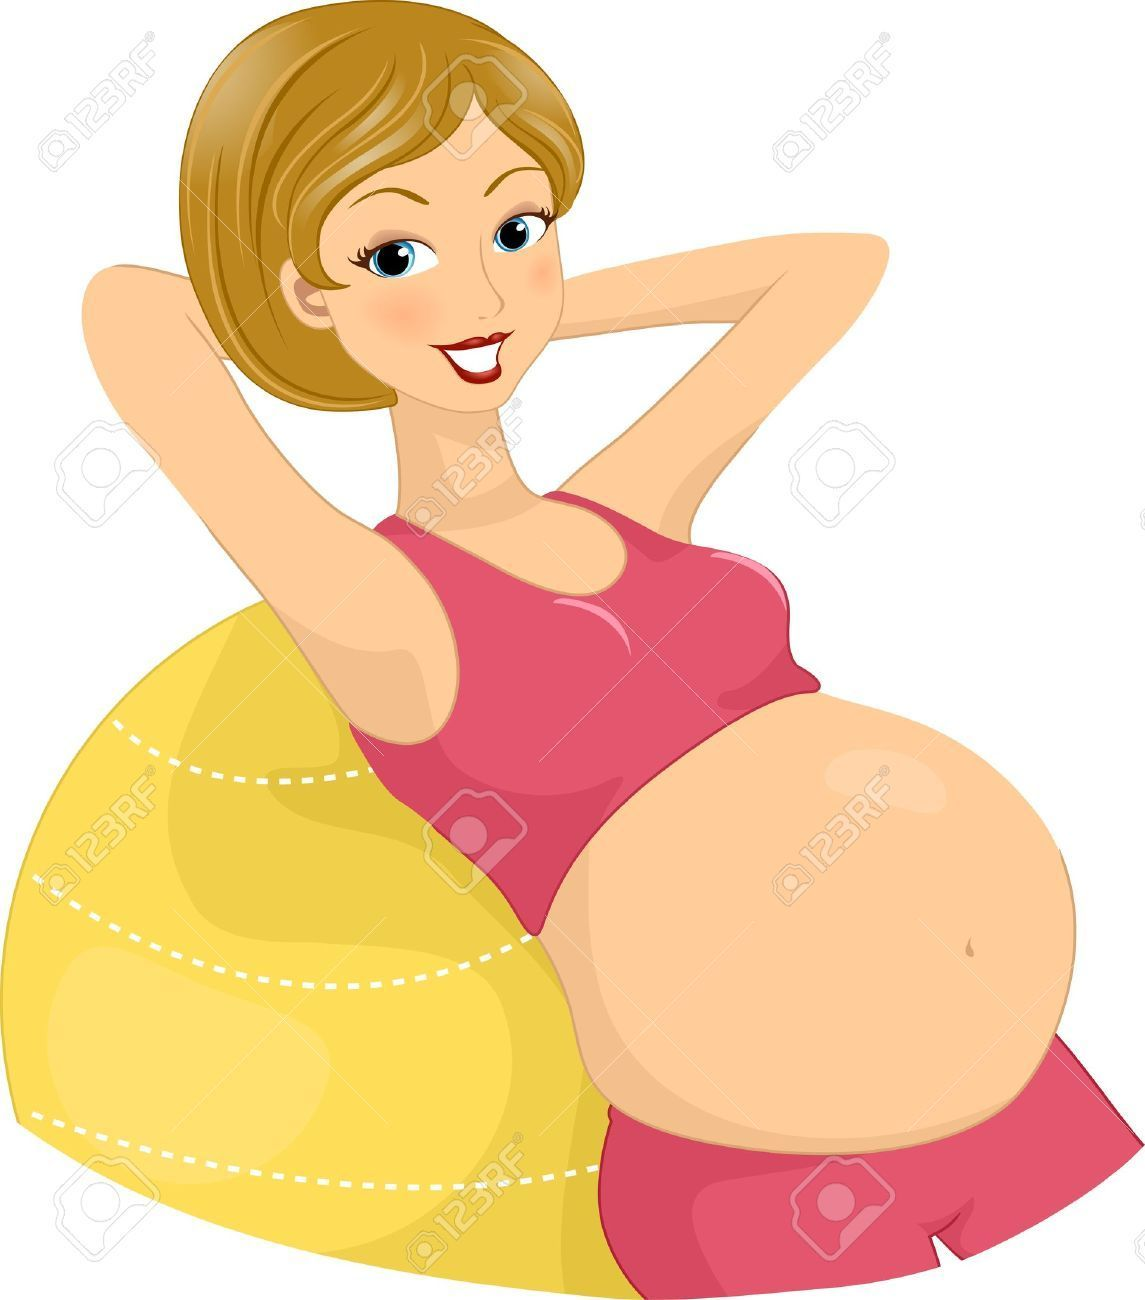 Illustration of a Pregnant Woman Exercising Using an Aerobics Ball -  Illustration of a pregnant woman. Illustration of a pregnant woman. Illustration of a pregnant woma - #aerobics #Ball #Embarazadasanime #Embarazadasbabyshower #Embarazadasdibujo #Embarazadasejercicios #Embarazadasilustracion #Embarazadasplaya #Embarazadasquotes #Embarazadasregalos #exercising #illustration #outfitsEmbarazadas #pregnant #using #woman #yogaEmbarazadas